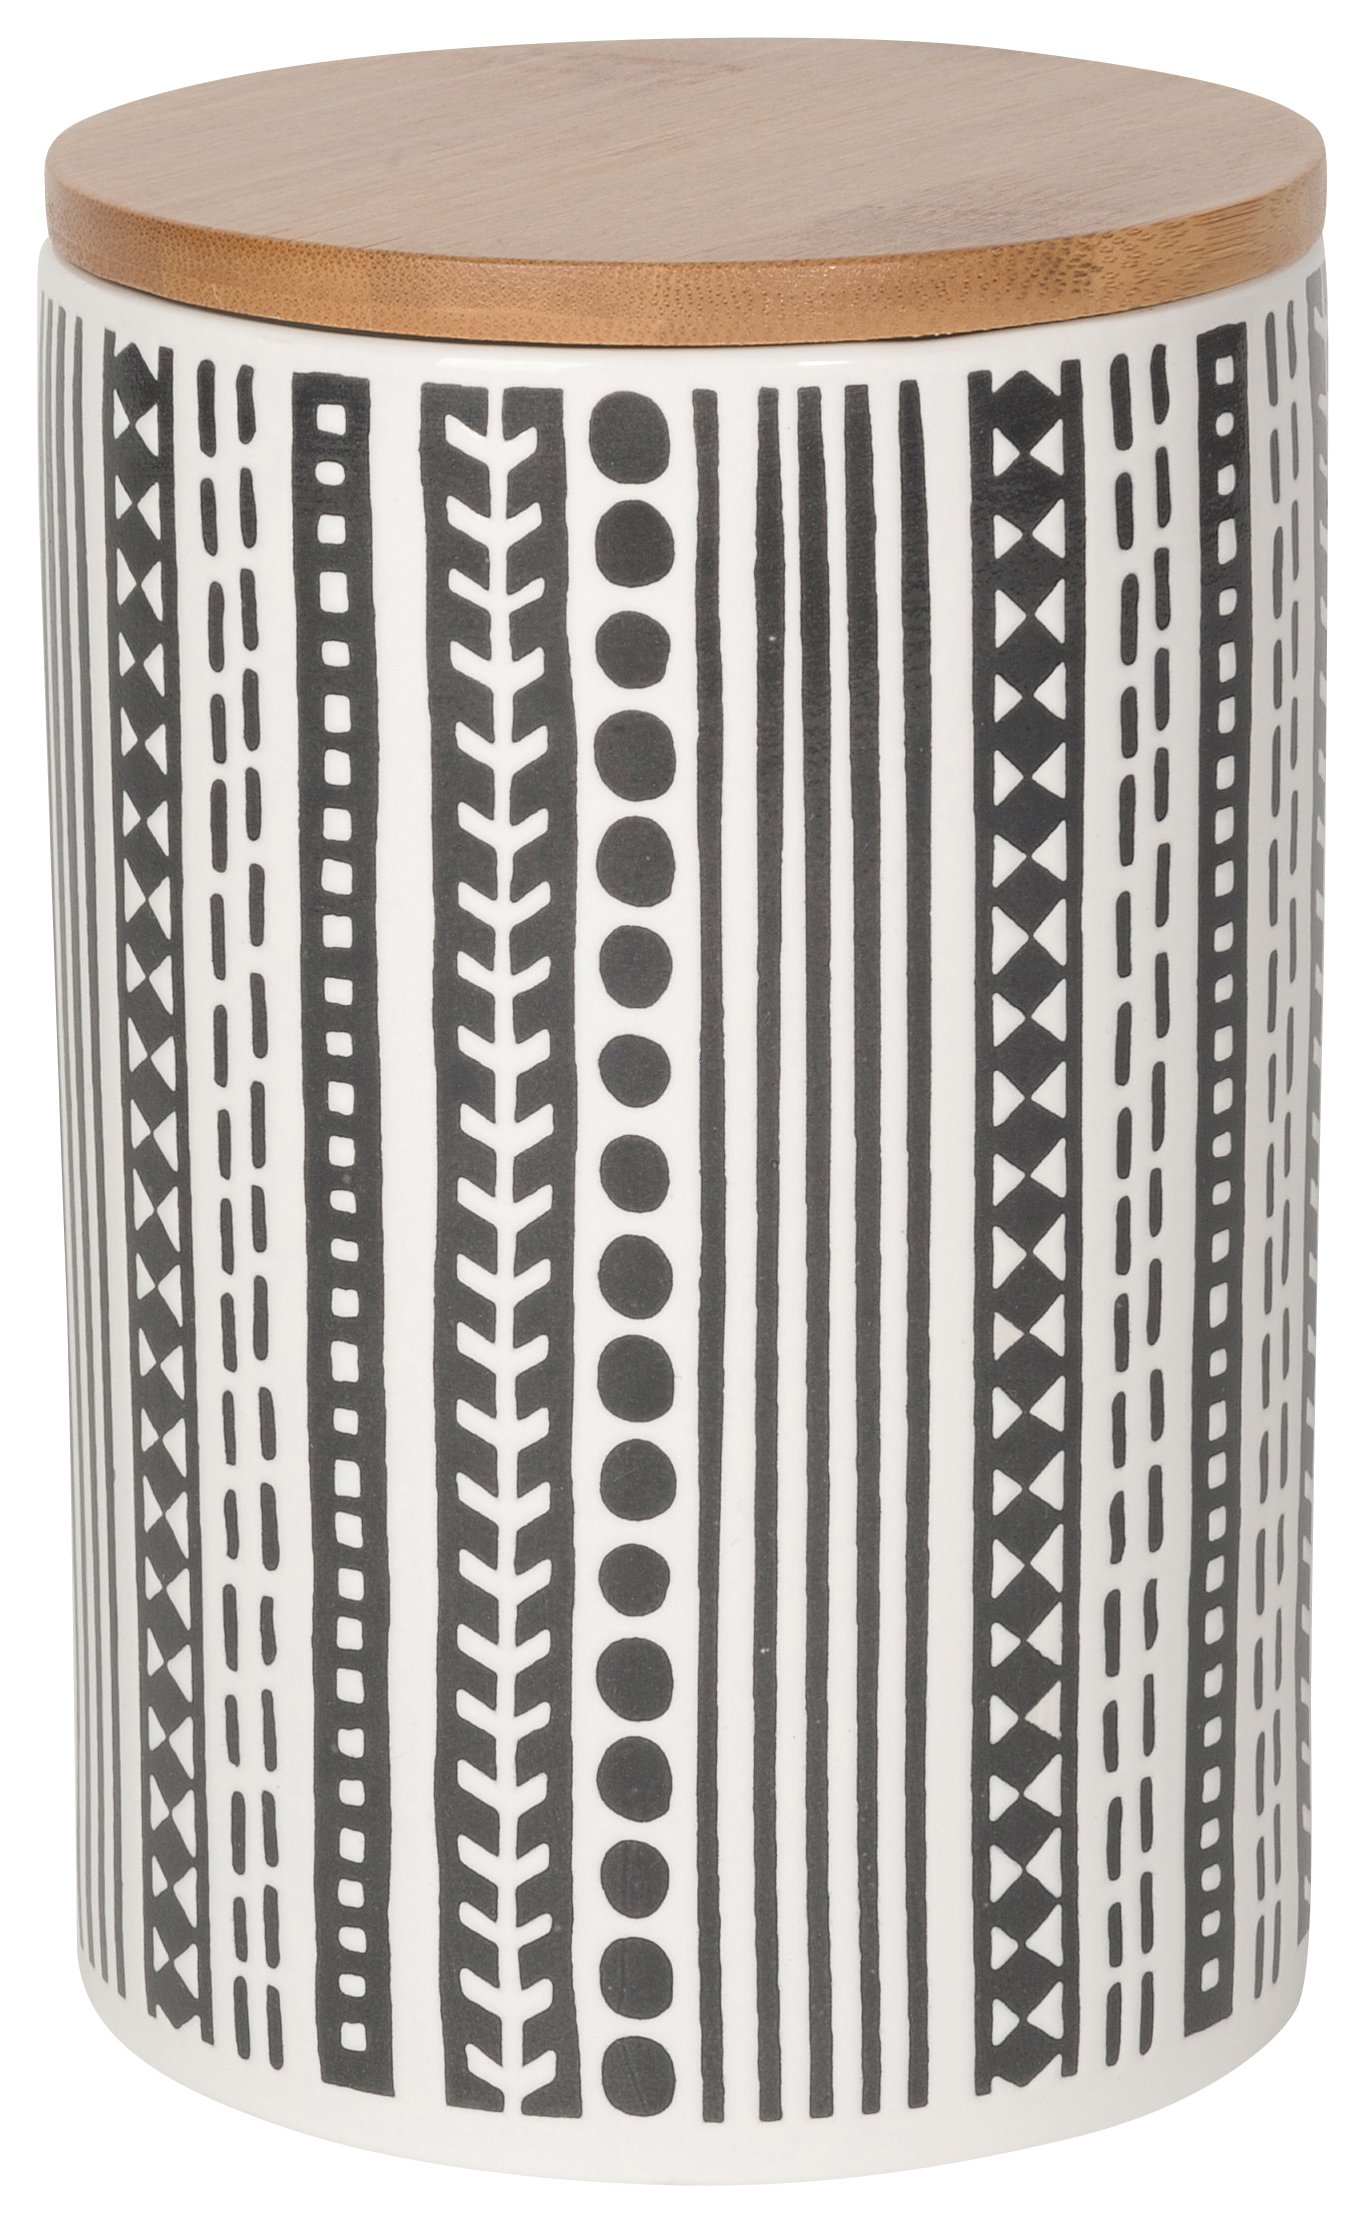 Now Designs Embossed Storage Canister, Large, Canyon Design